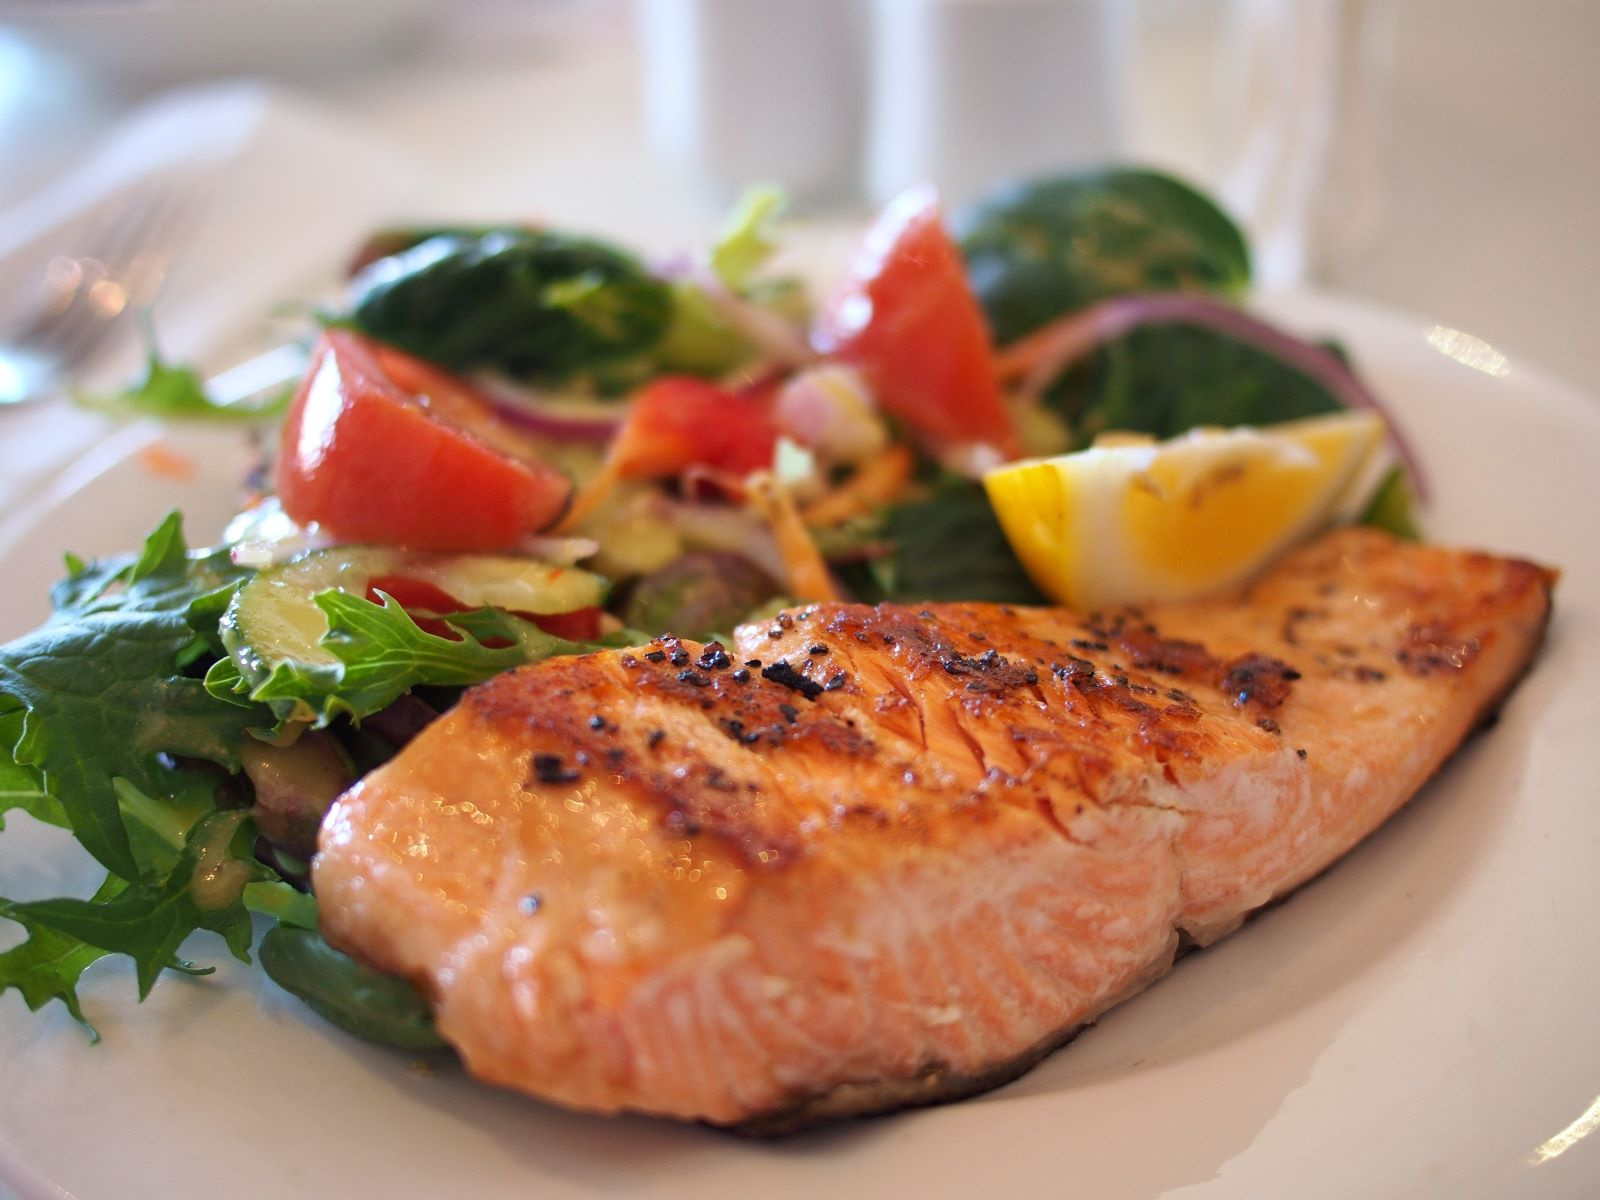 Spring green salad with tomatoes and a salmon steak with a wedge of lemon